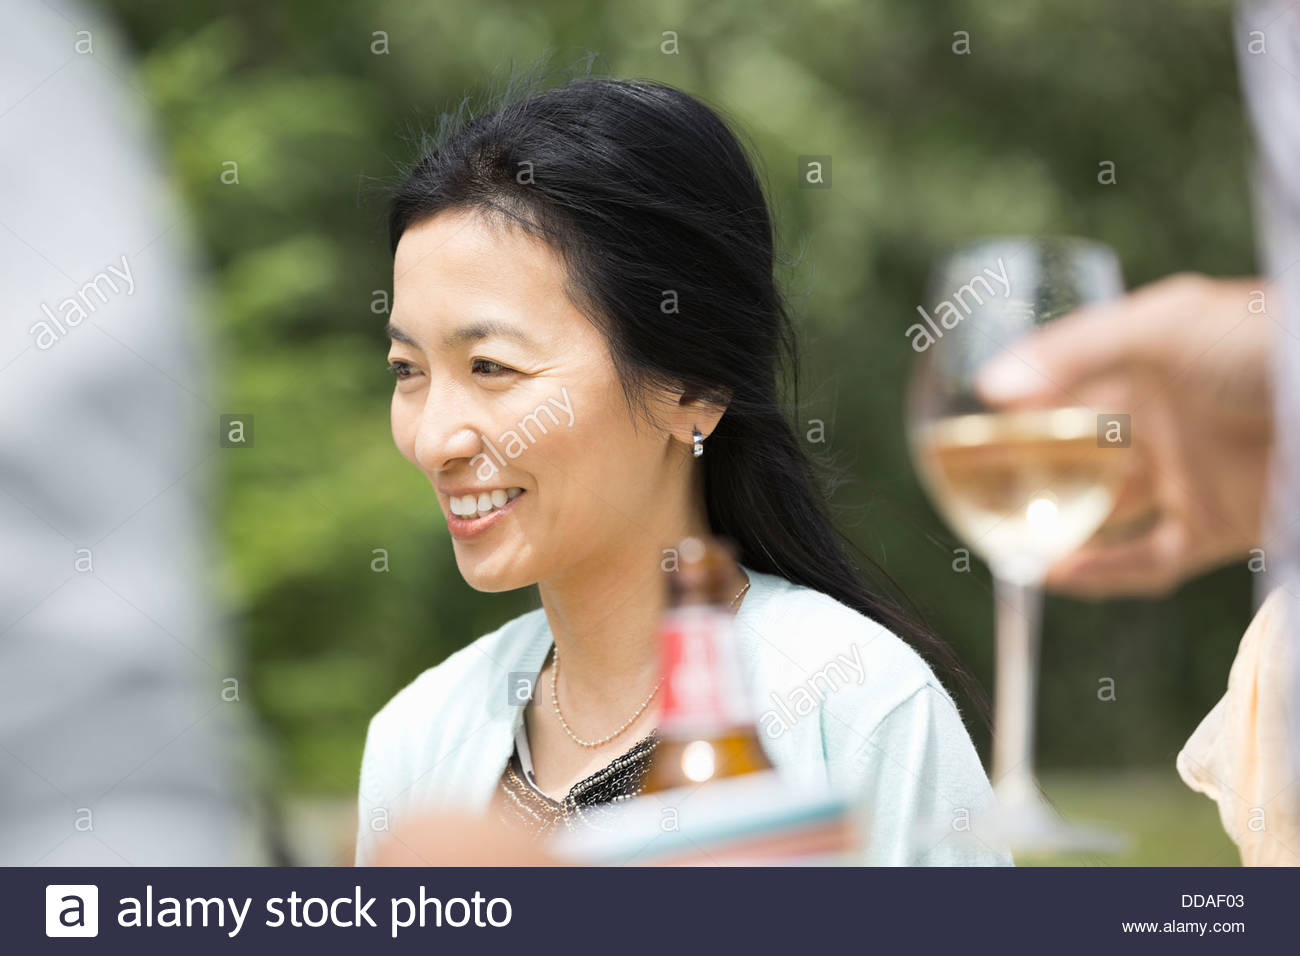 Young woman smiling outdoors Photo Stock